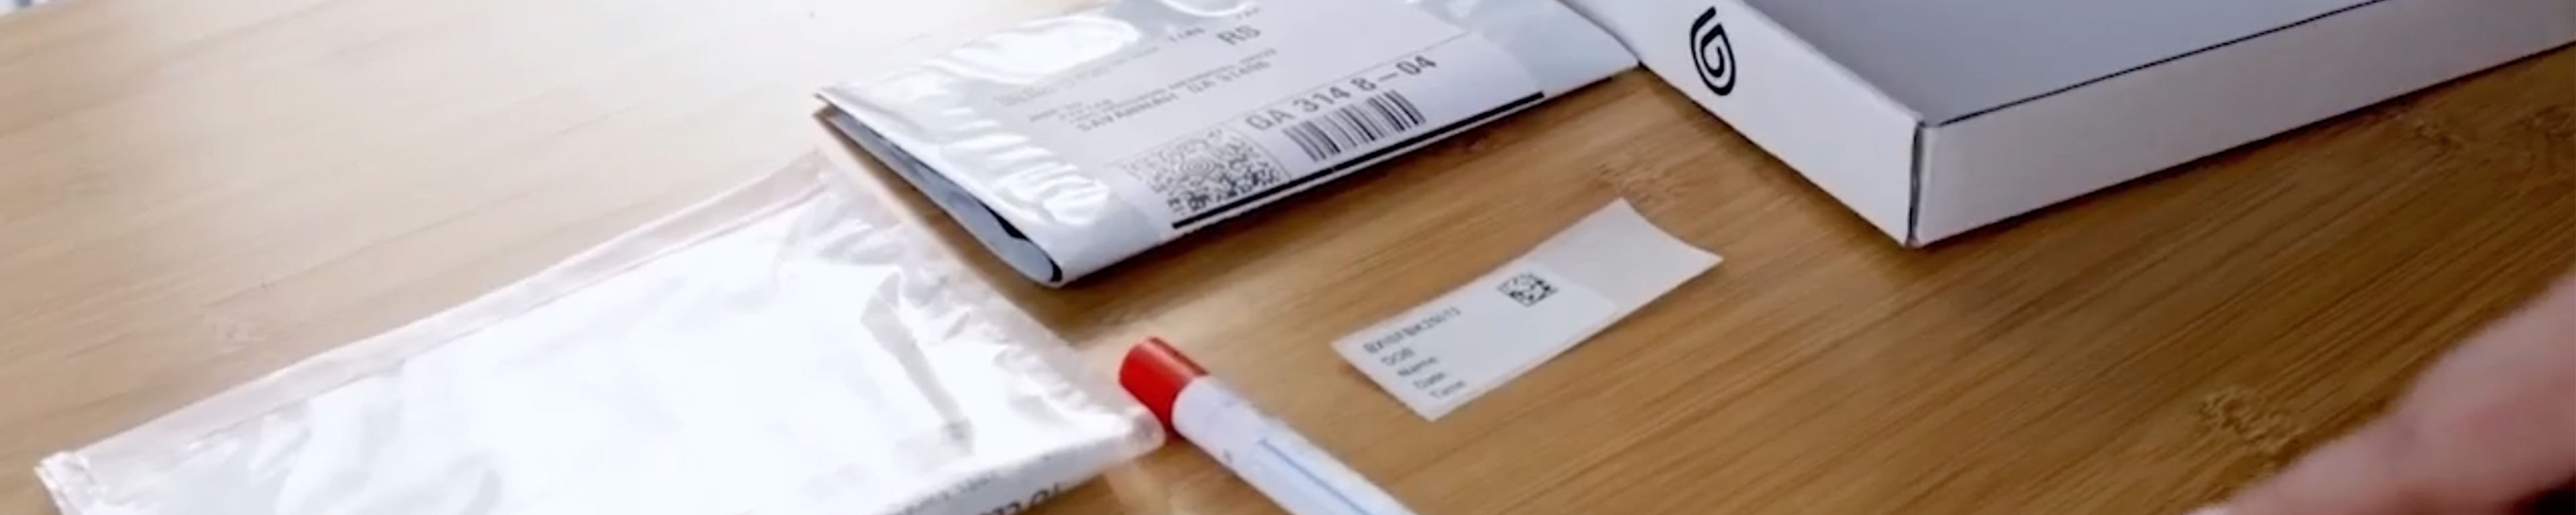 A swab and testing kit on a table.